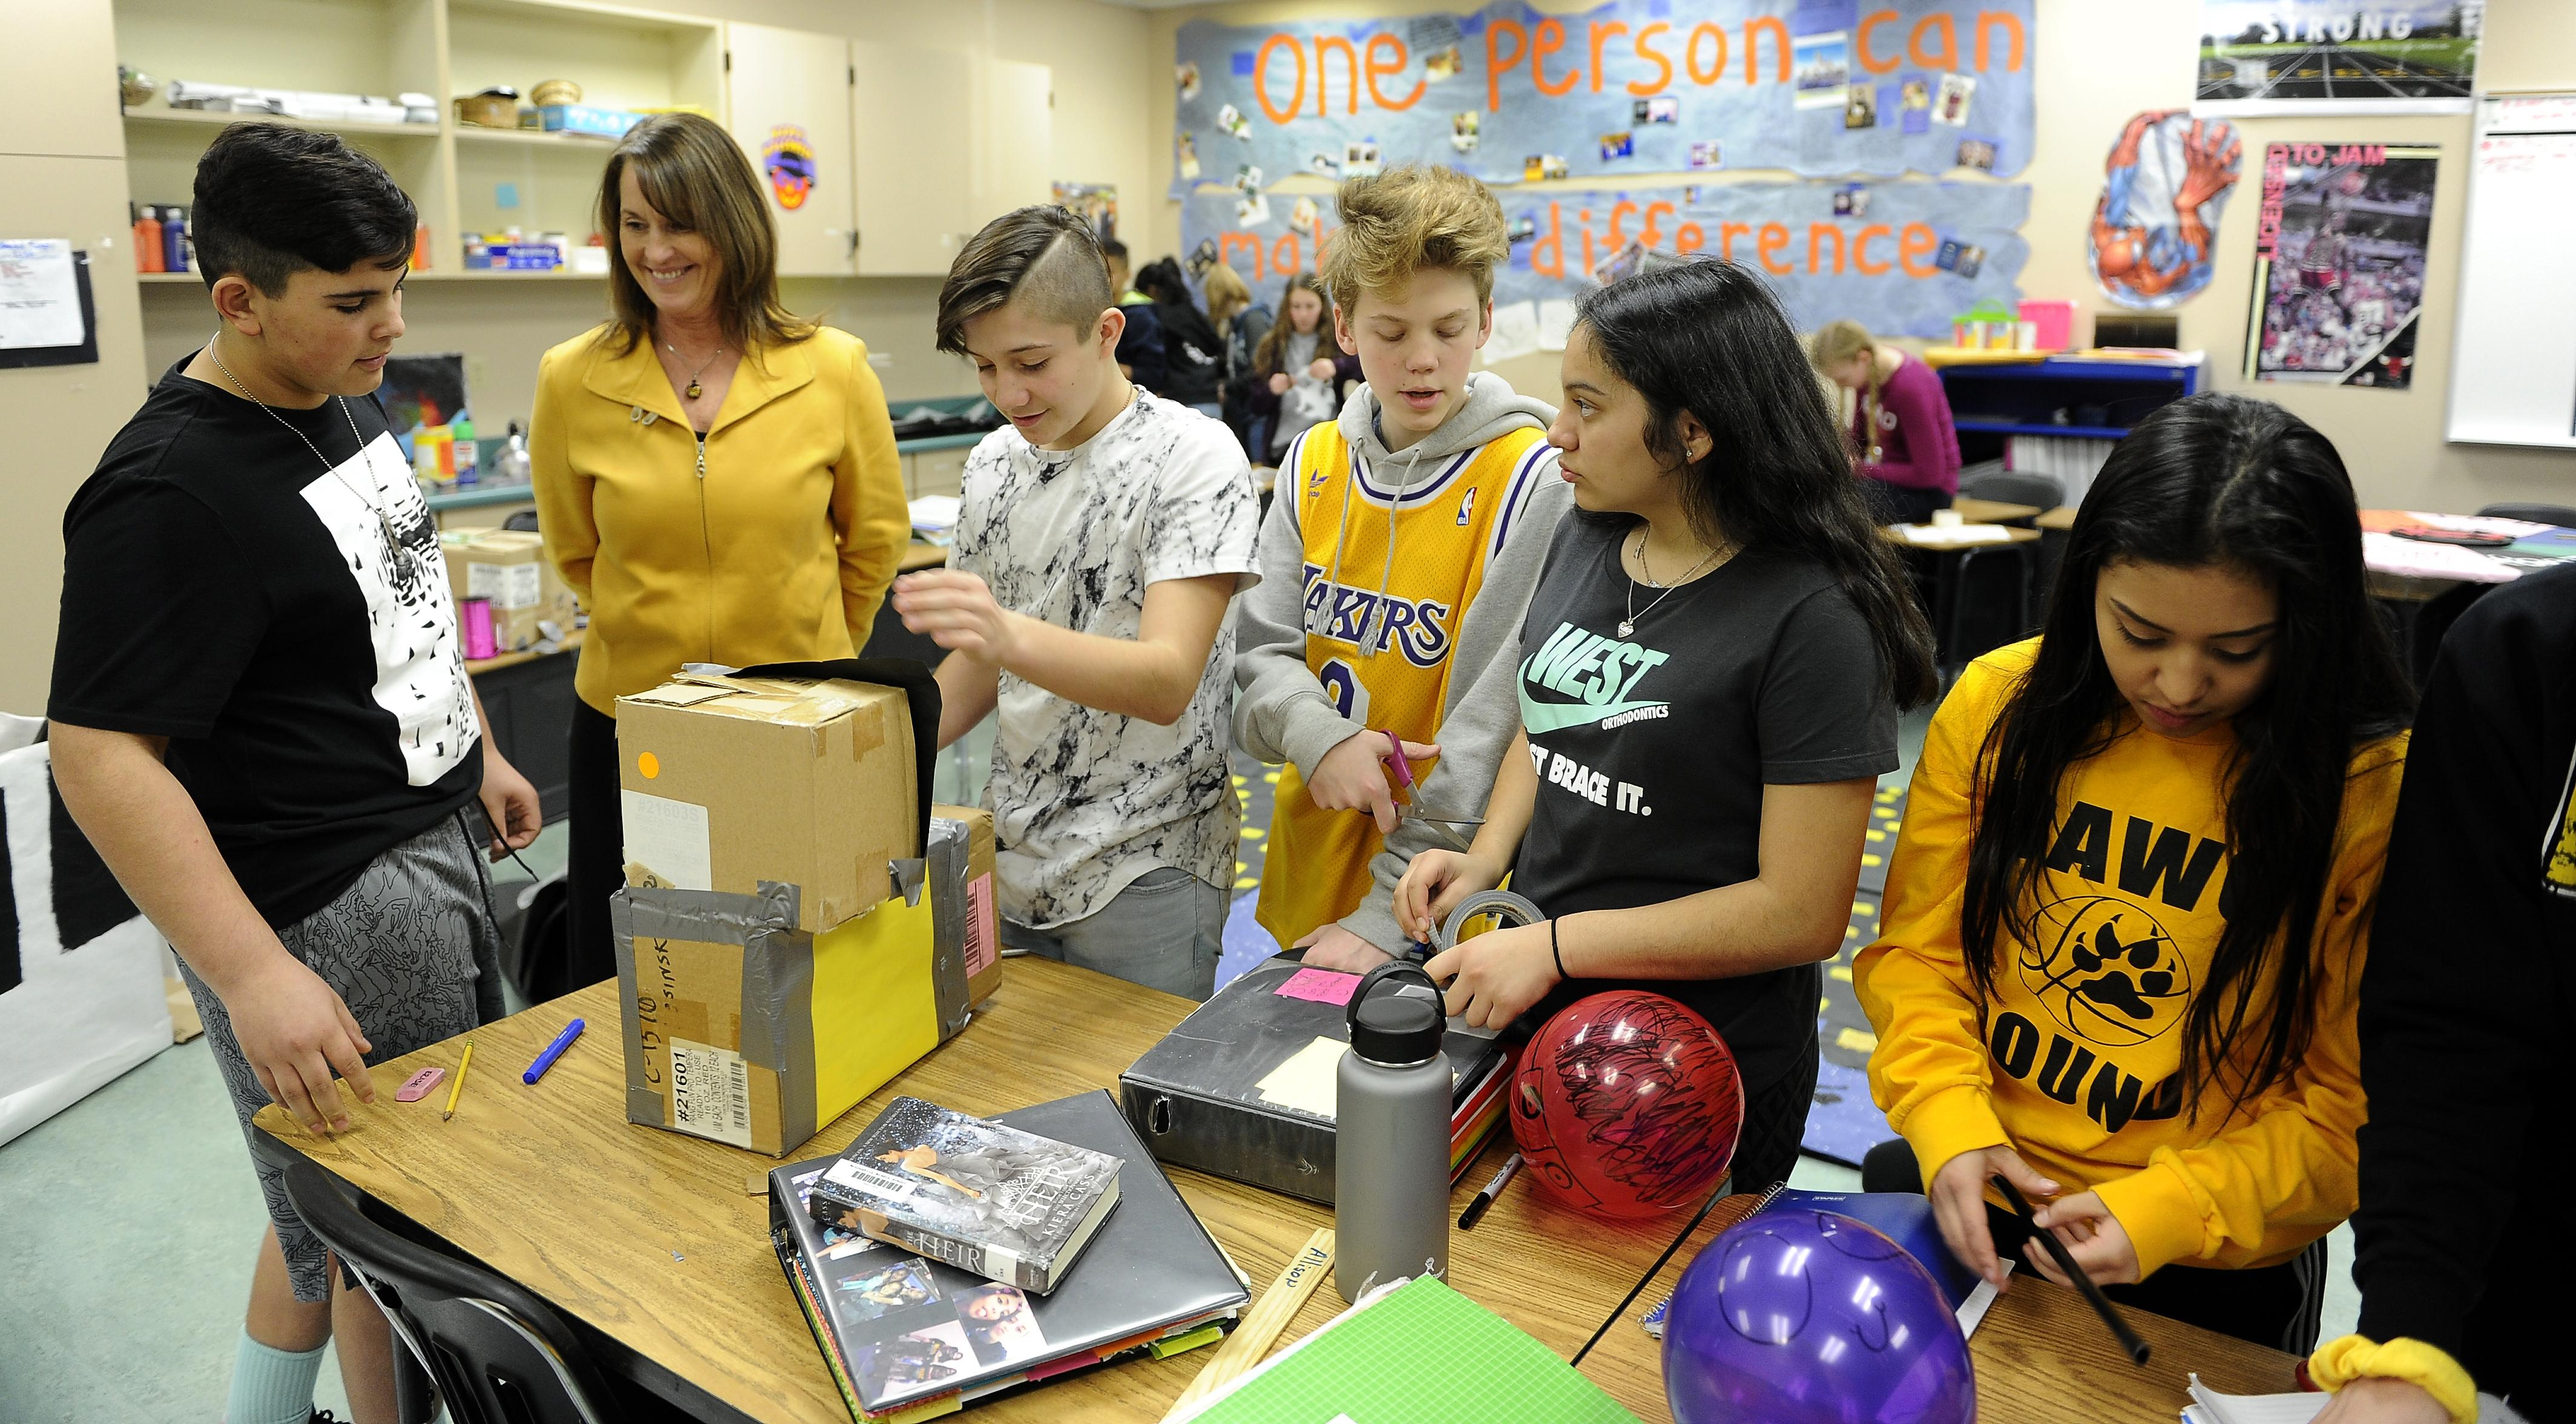 McLoughlin Middle School Principal Linda White works with students on art projects for an upcoming school dance. [Mail Tribune / Andy Atkinson]